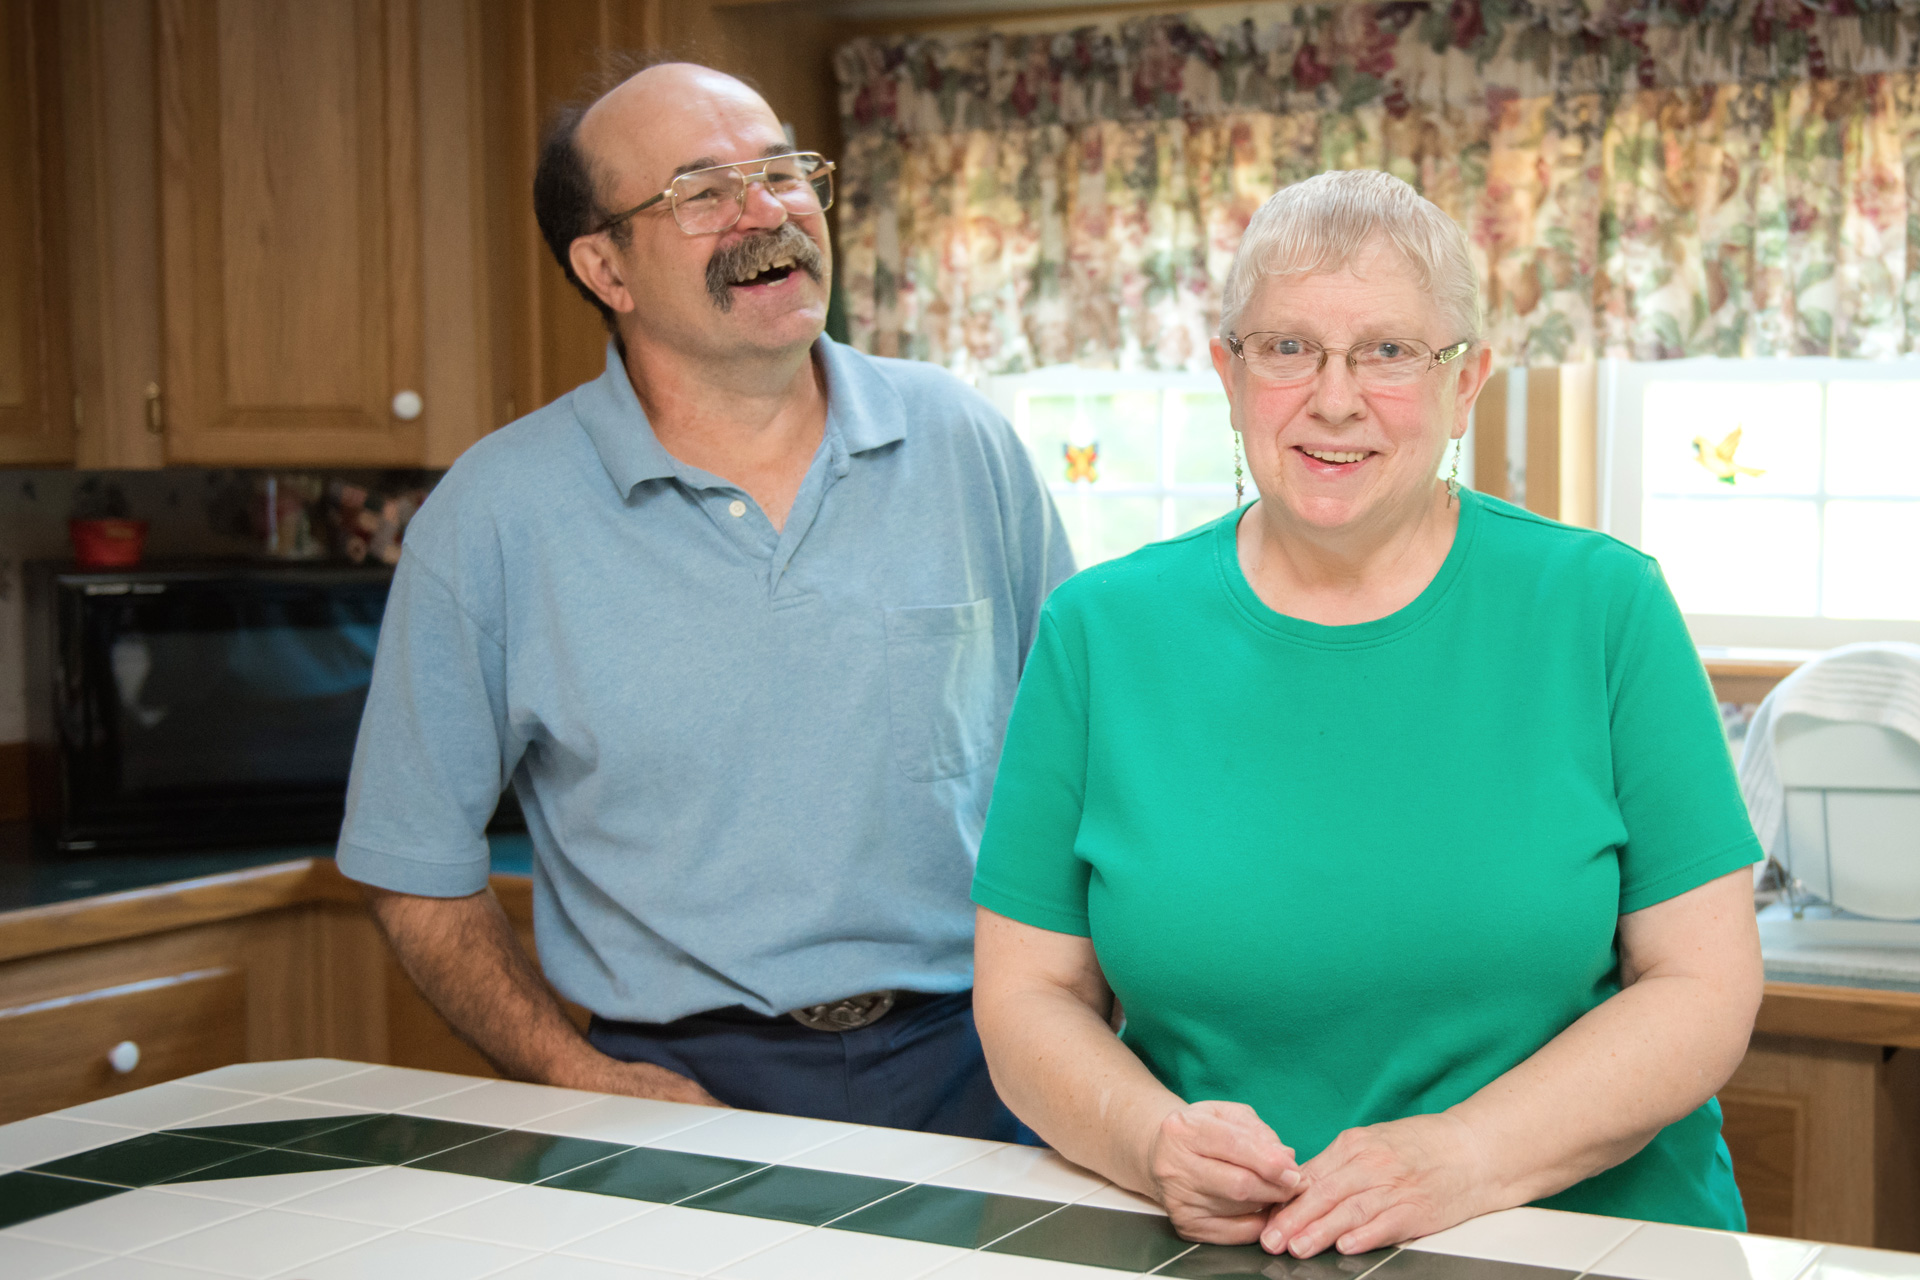 Man and woman stand at kitchen counter; man is laughing